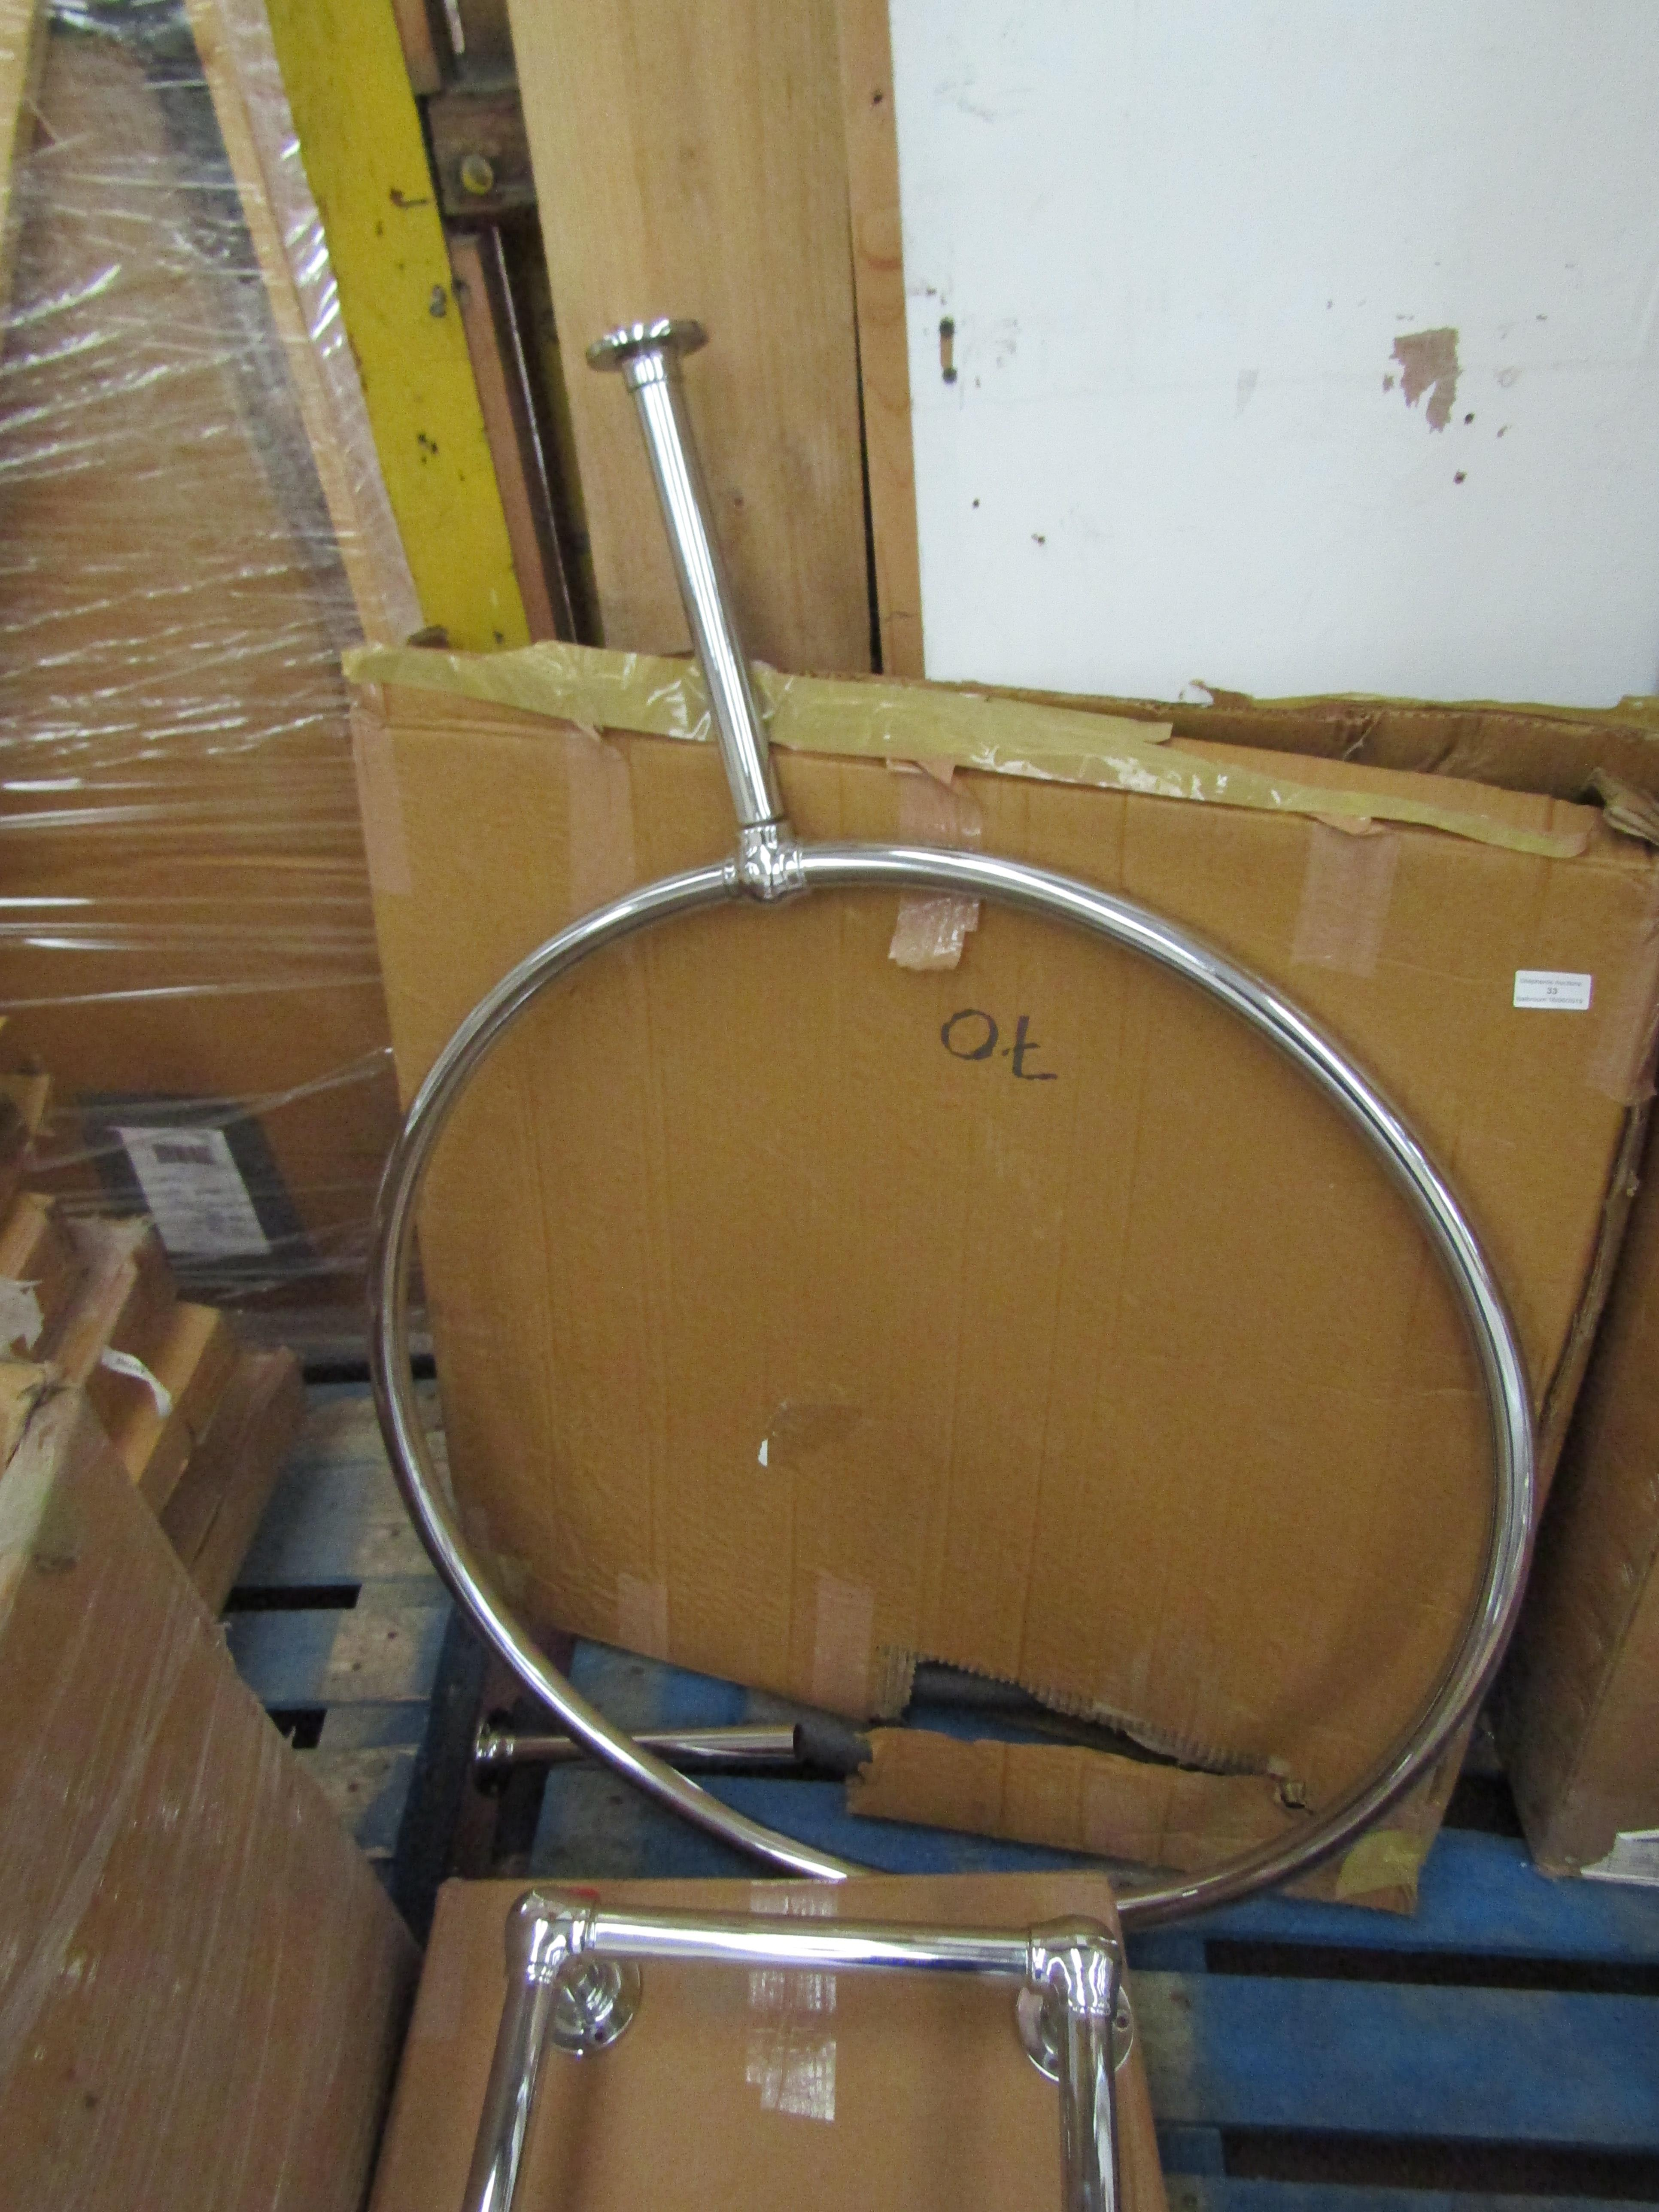 Chrome Circular over bath shower rail, come with both legs and boxed, the diameter of the actual